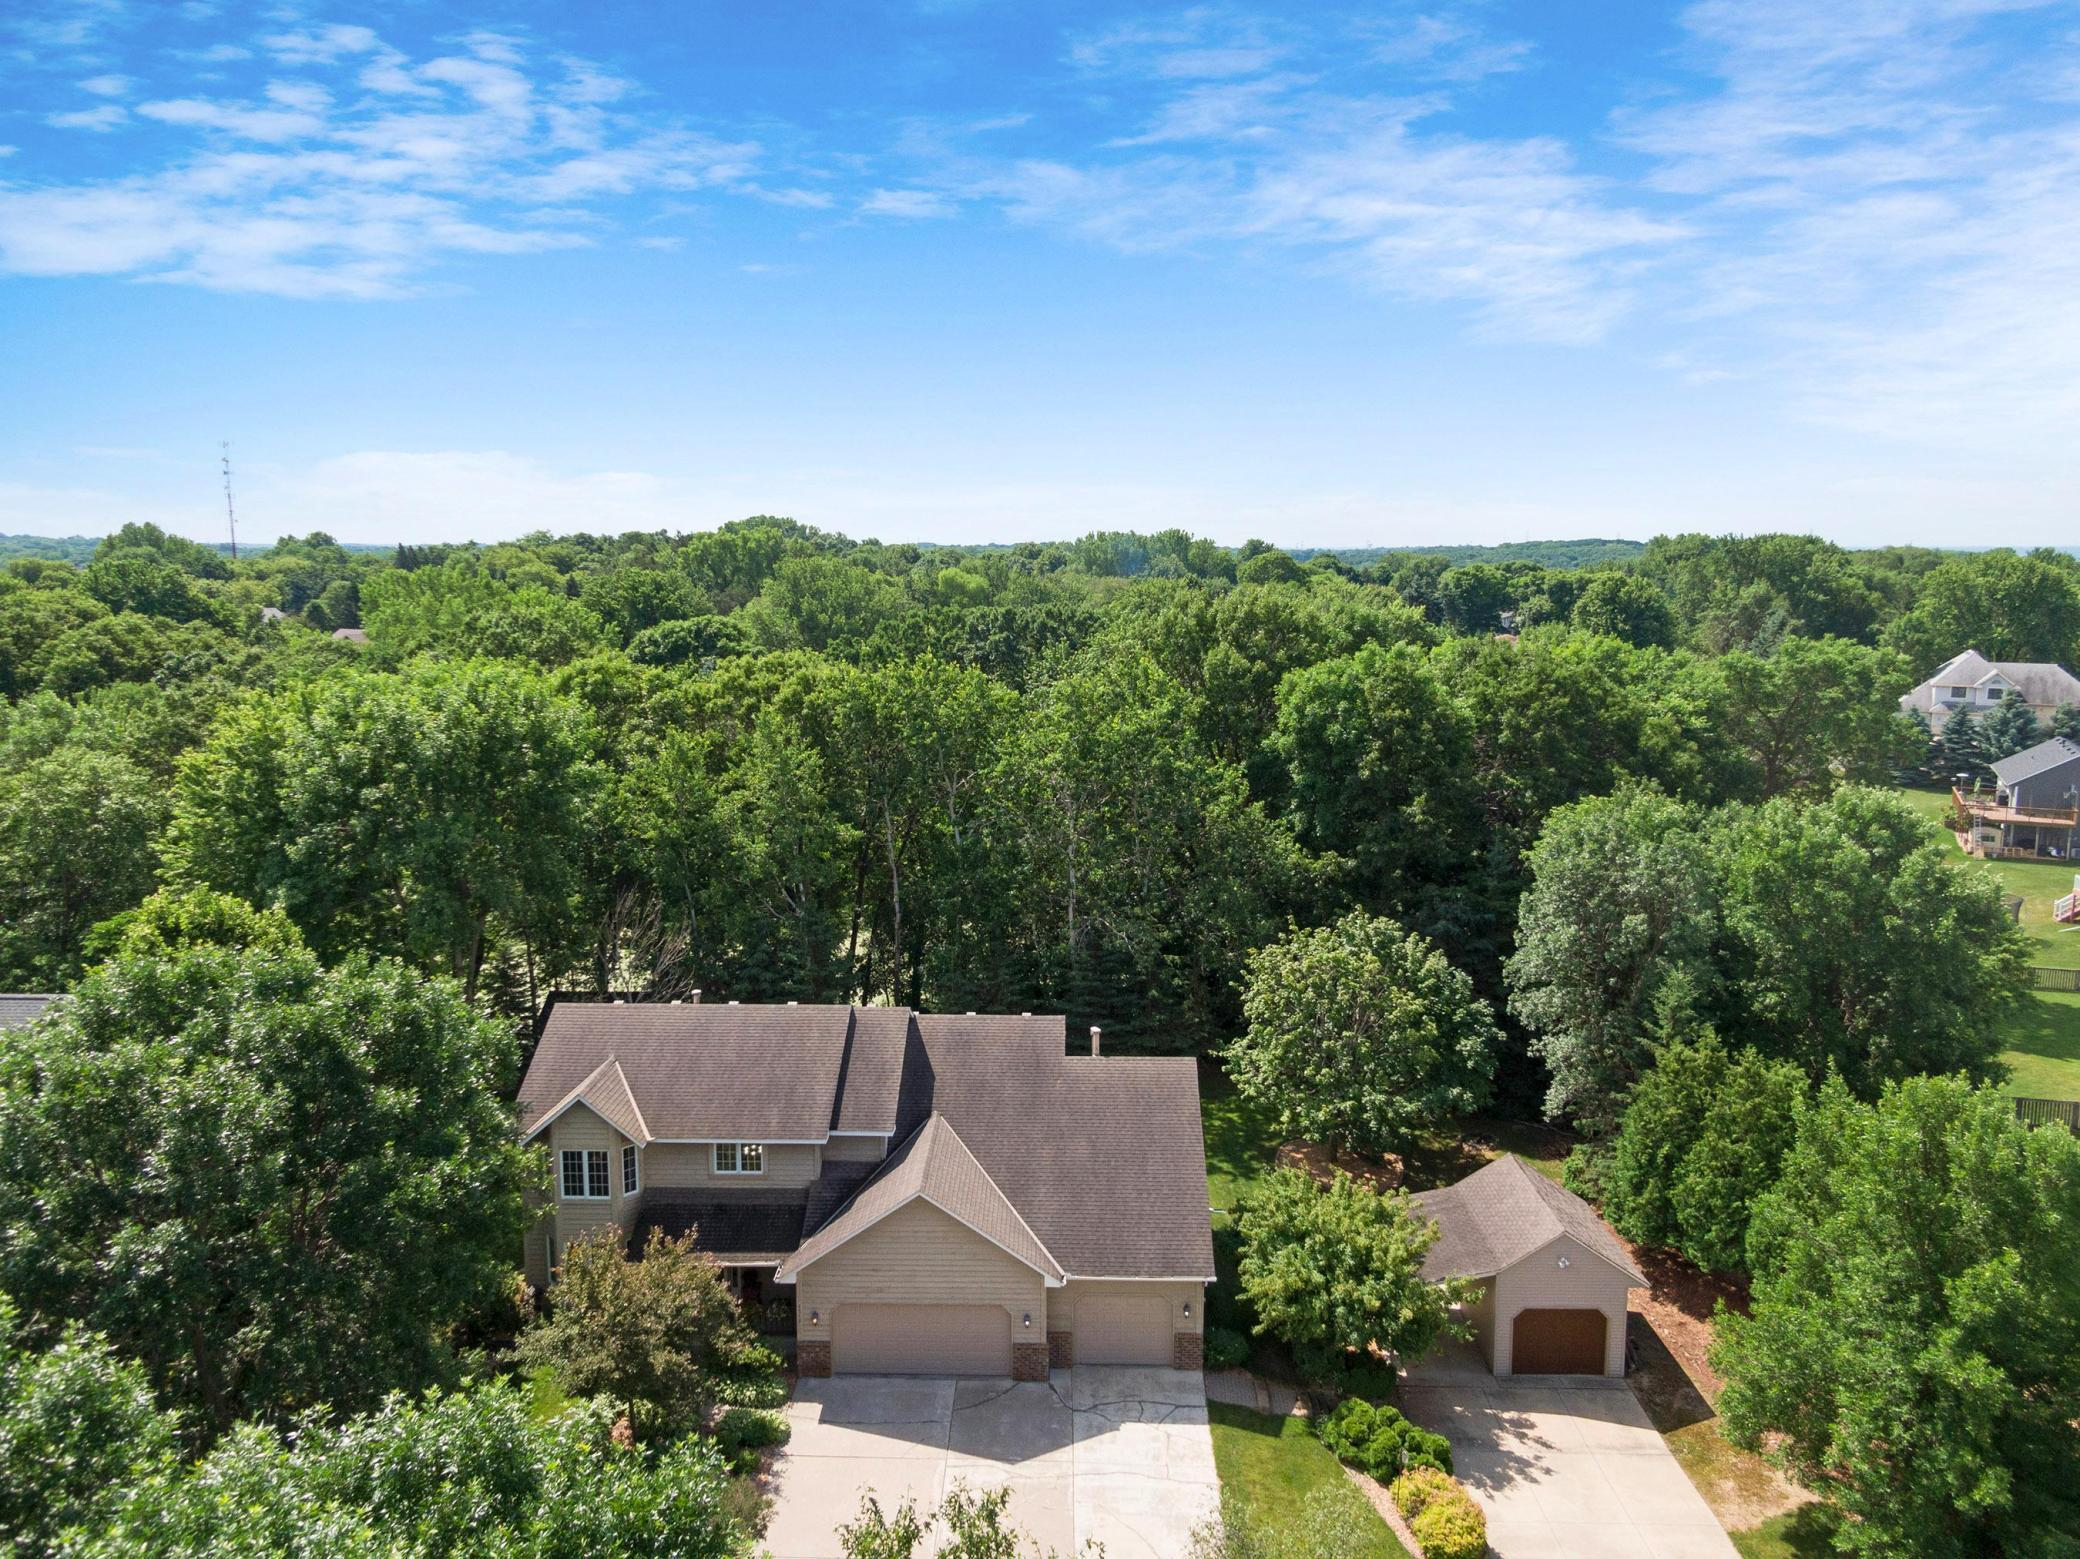 2512 Schaller E Property Photo - Maplewood, MN real estate listing